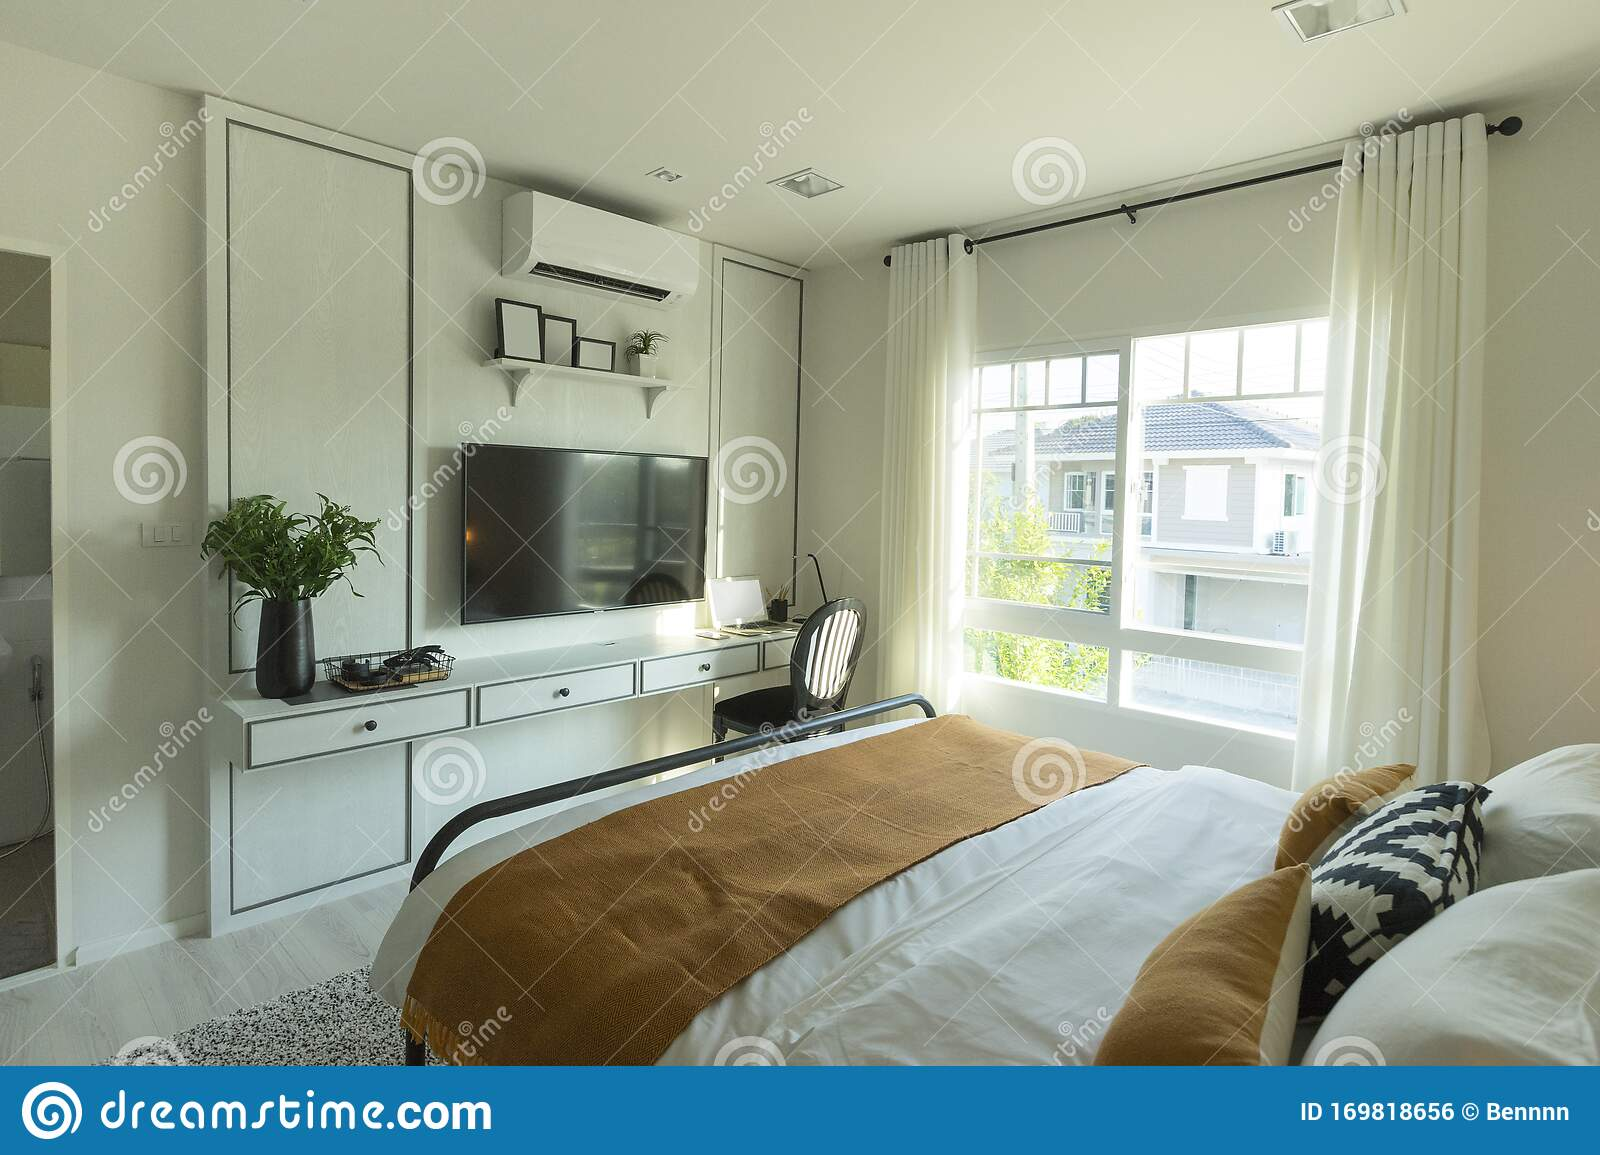 Interior Of Master Bedroom With Window And Big Tv On The Wall Stock Photo Image Of Modern House 169818656